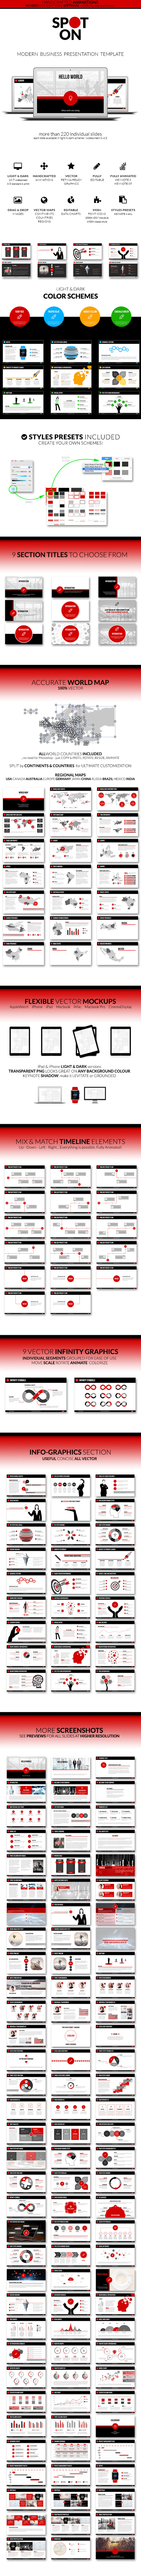 Spot On Keynote Presentation Template